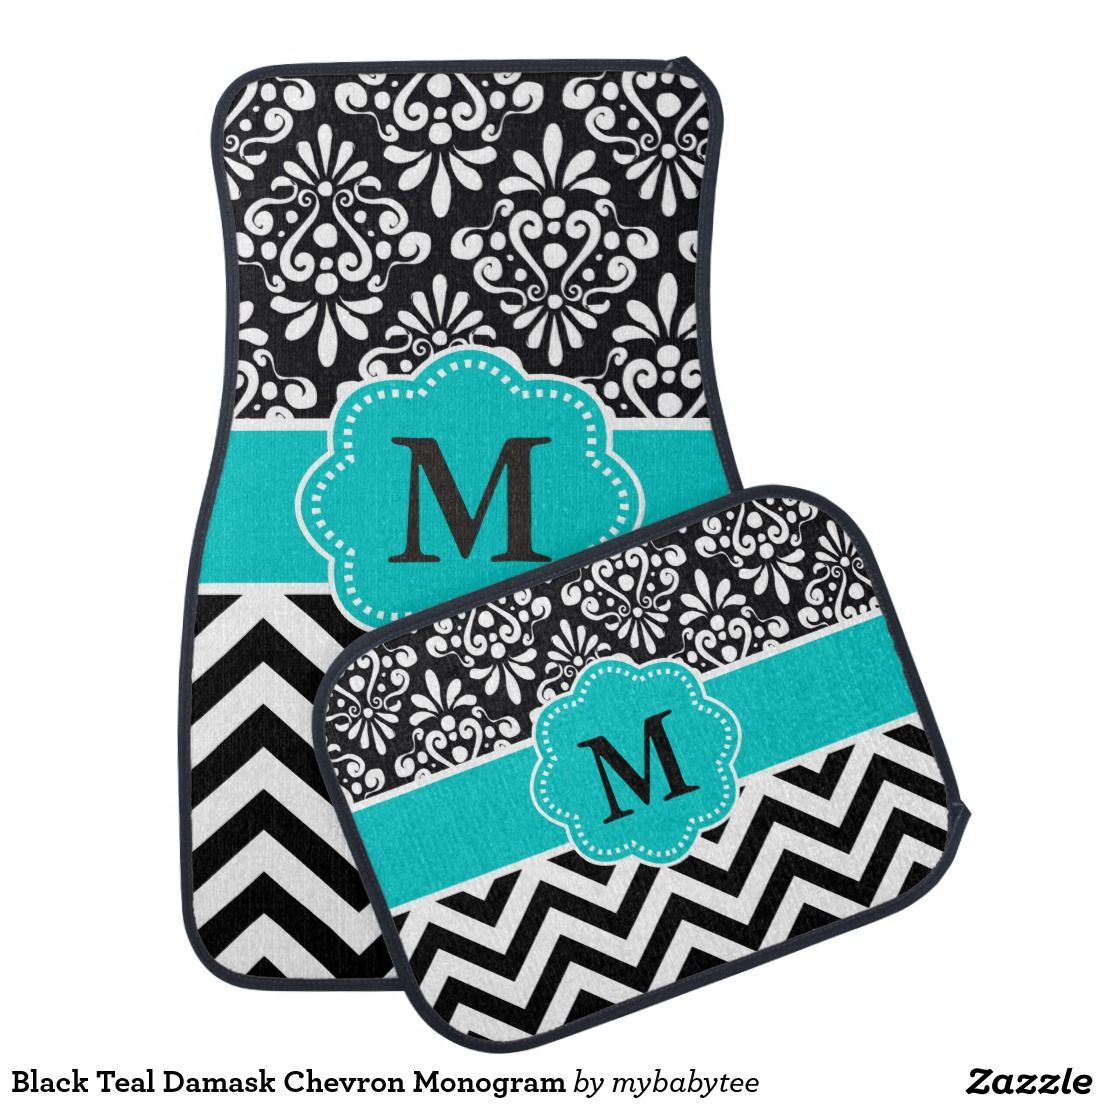 mats monogram mat women car for accessories cute license il turtle tribal gift fullxfull floor sweet aztec custom ideas listing personalized